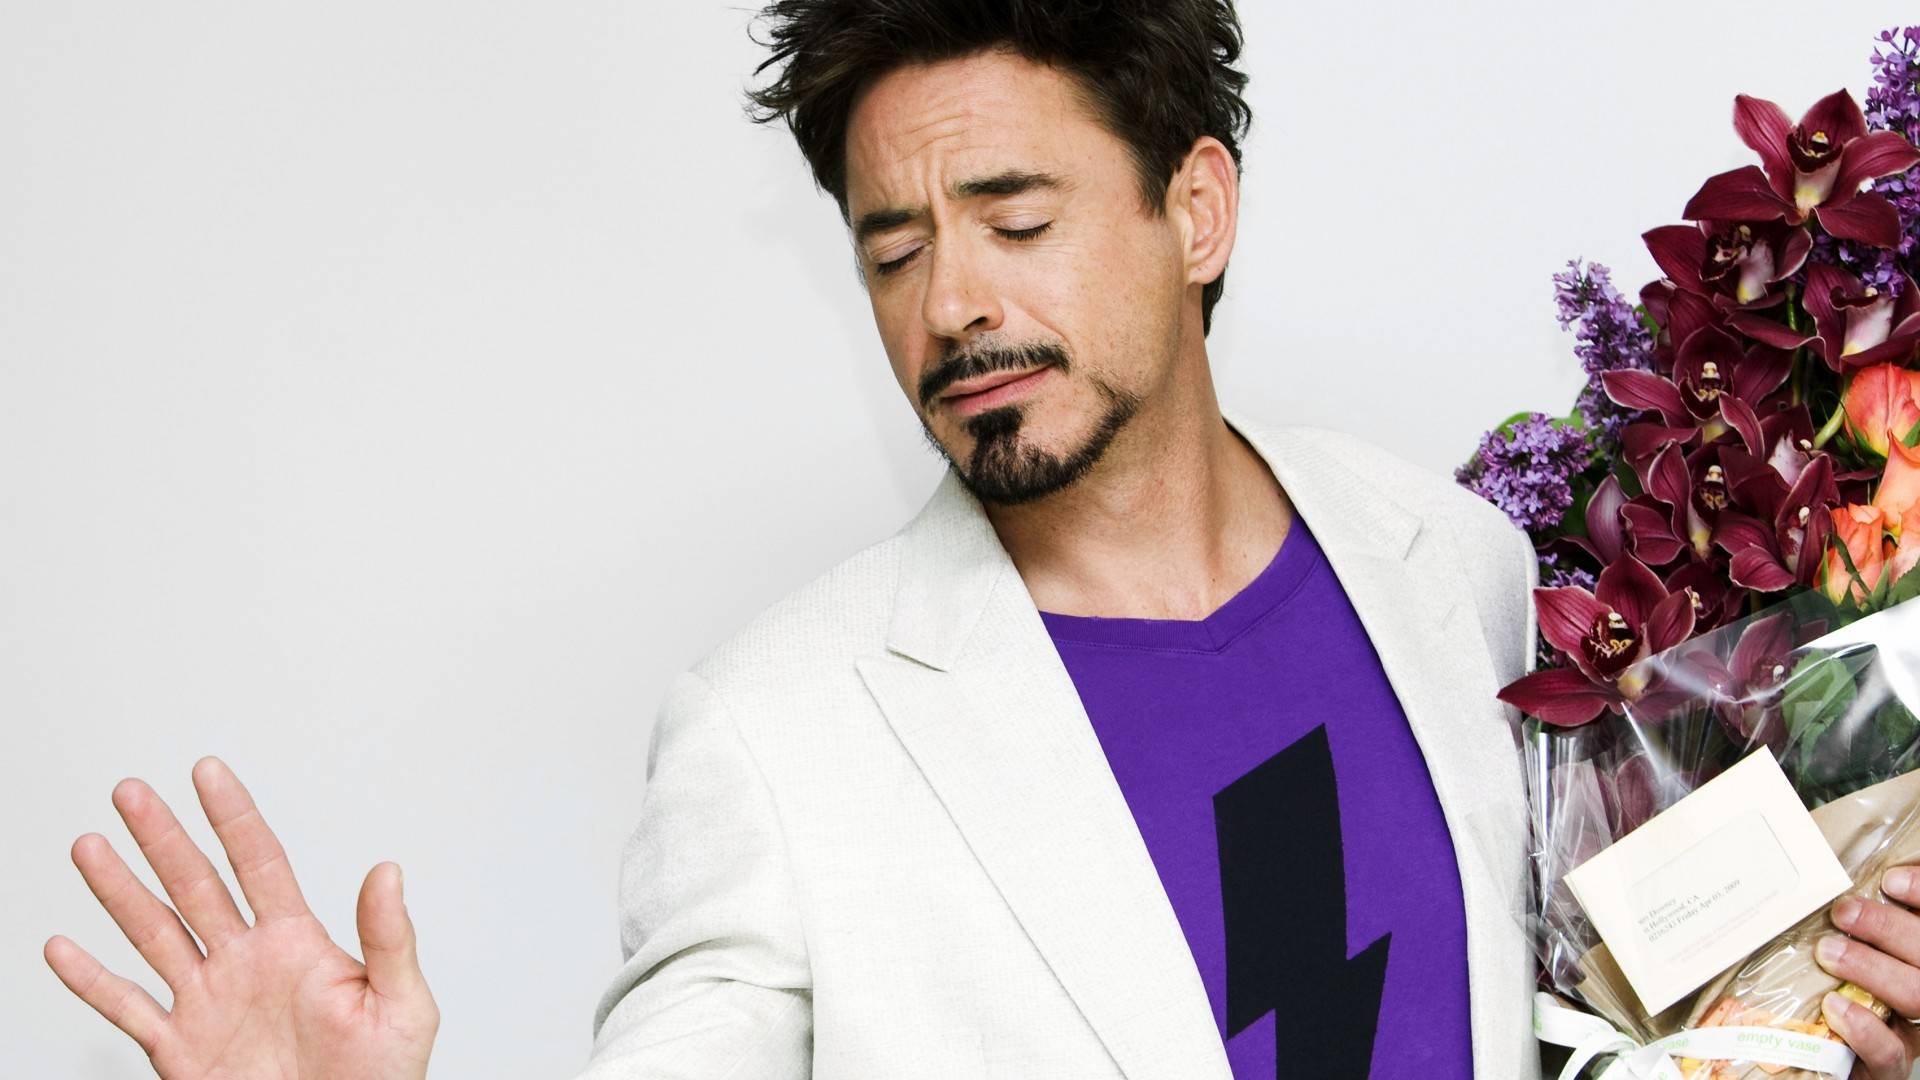 Wallpaper Robert Downey Jr., Most Popular Celebs in 2015, actor, flowers, Celebrities #4180Taking an 4k images, freezing a moment,  reveals how rich reality truly is.